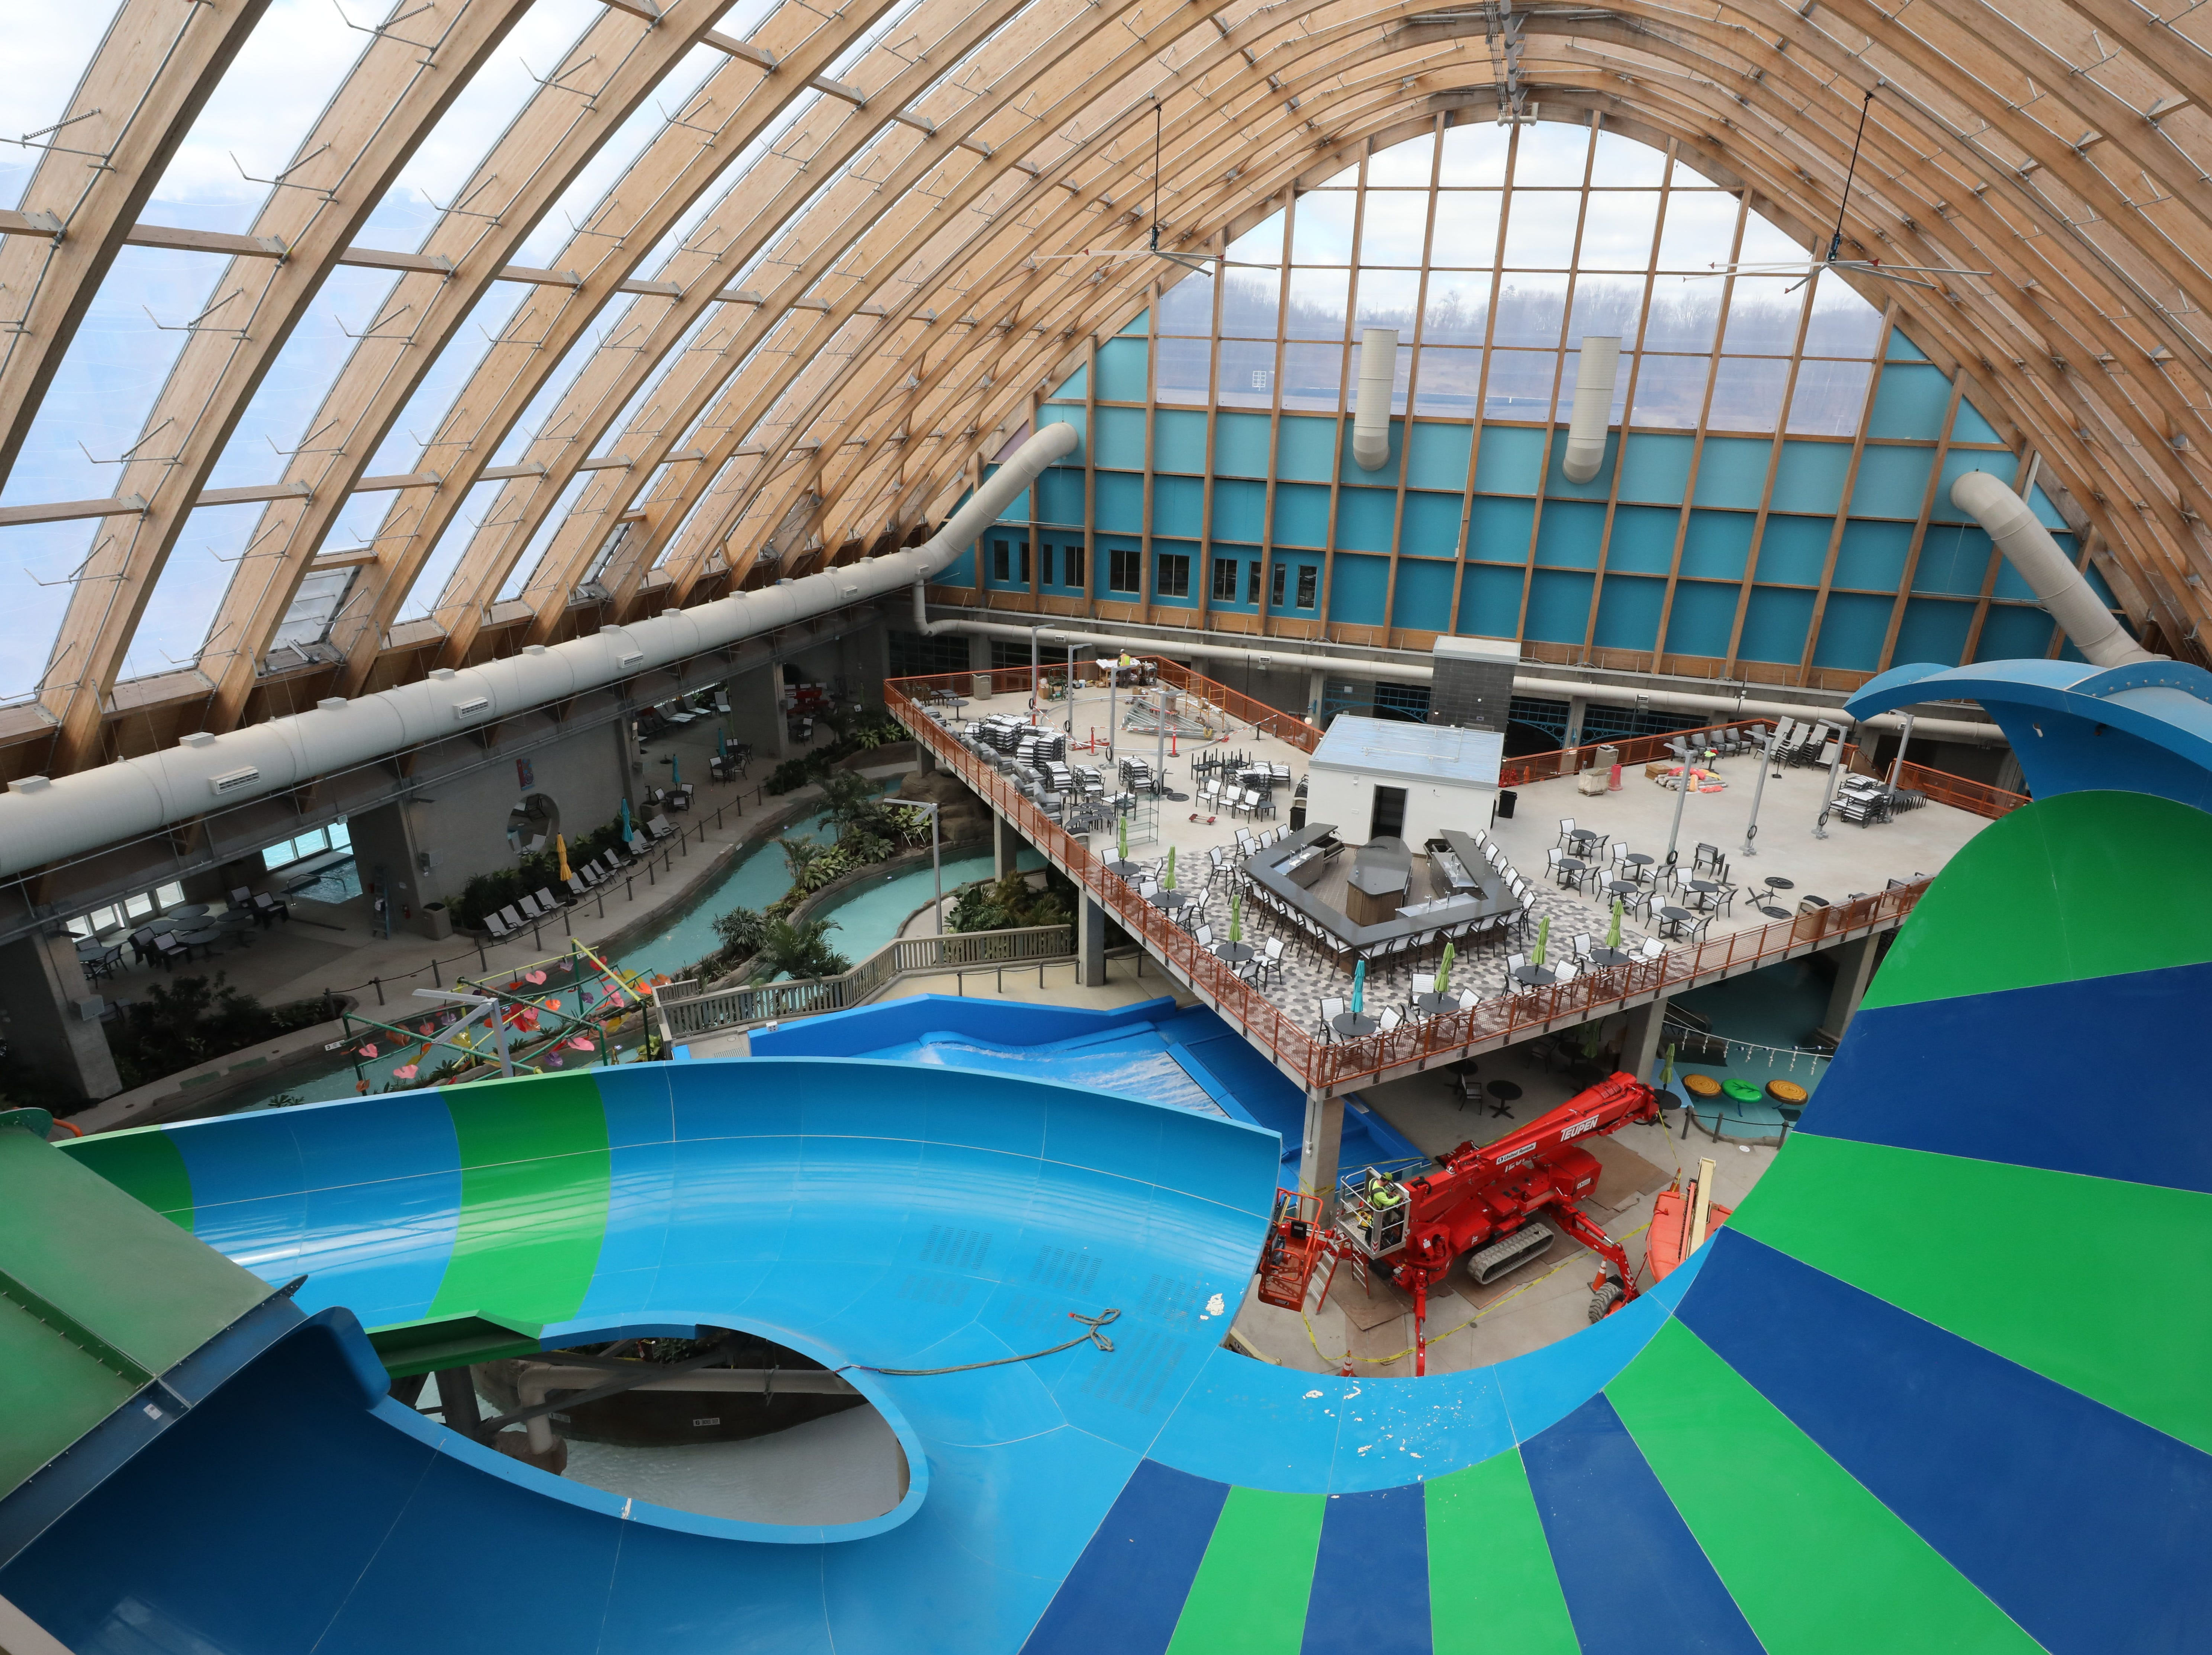 Water slides are assembled under the 60,000 square foot transparent roofing system, that keeps the interior at a toasty 84 degrees for year round warmth, at The Kartrite Resort & Indoor Waterpark in Monticello, April 10, 2019.